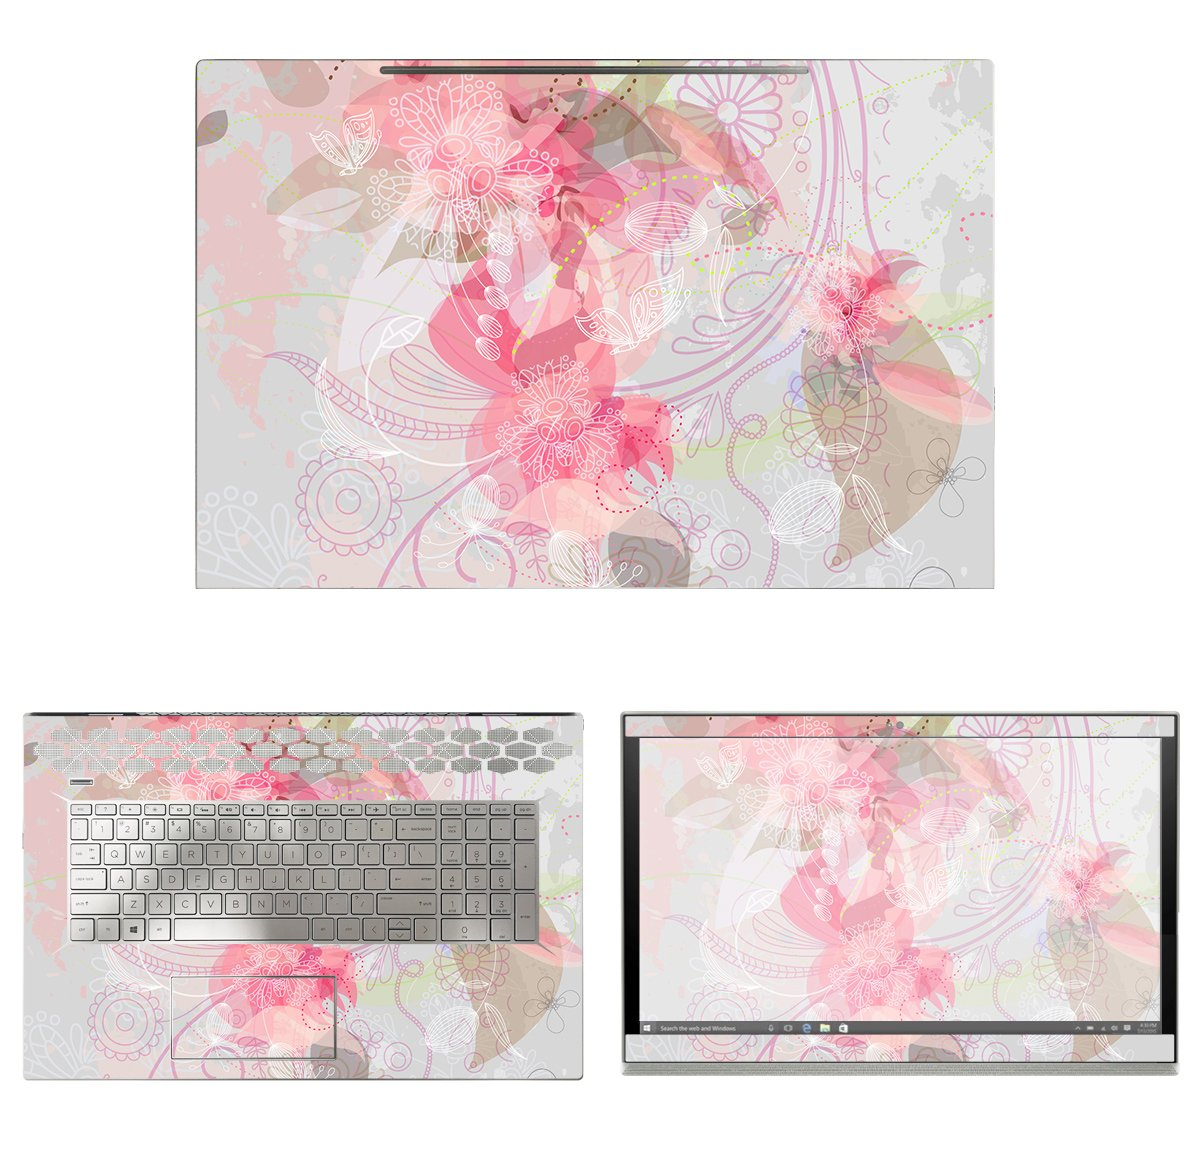 decalrus - Protective Decal Floral Skin Sticker for HP ENVY 17M-BW0013DX (17.3'' Screen) case cover wrap HPenvy17m_bw0013dx-171